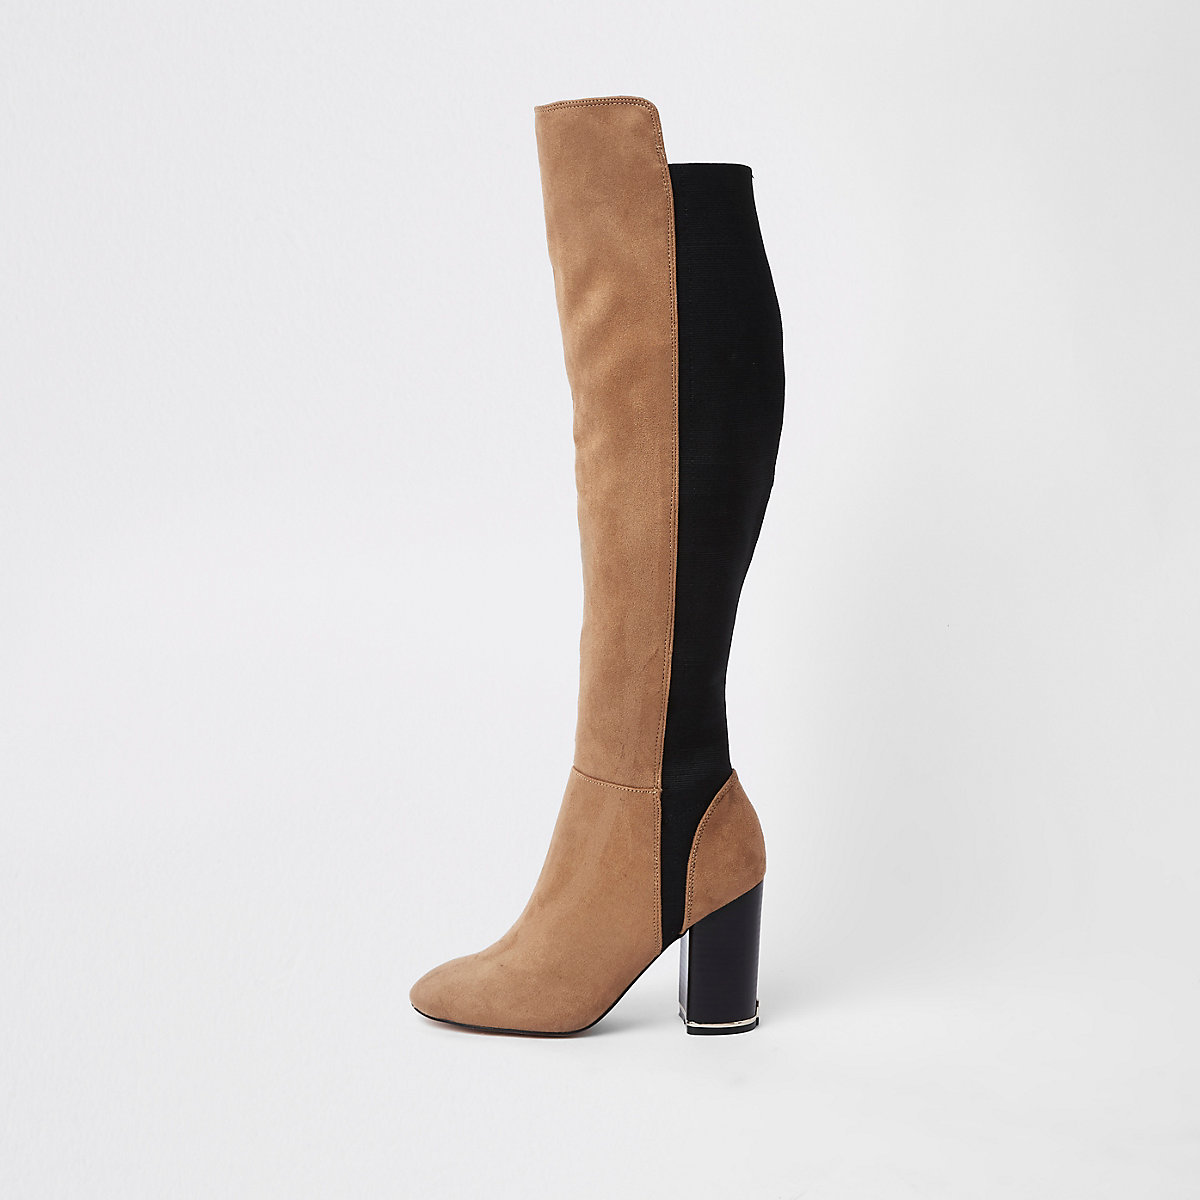 Light brown knee high contrast boots